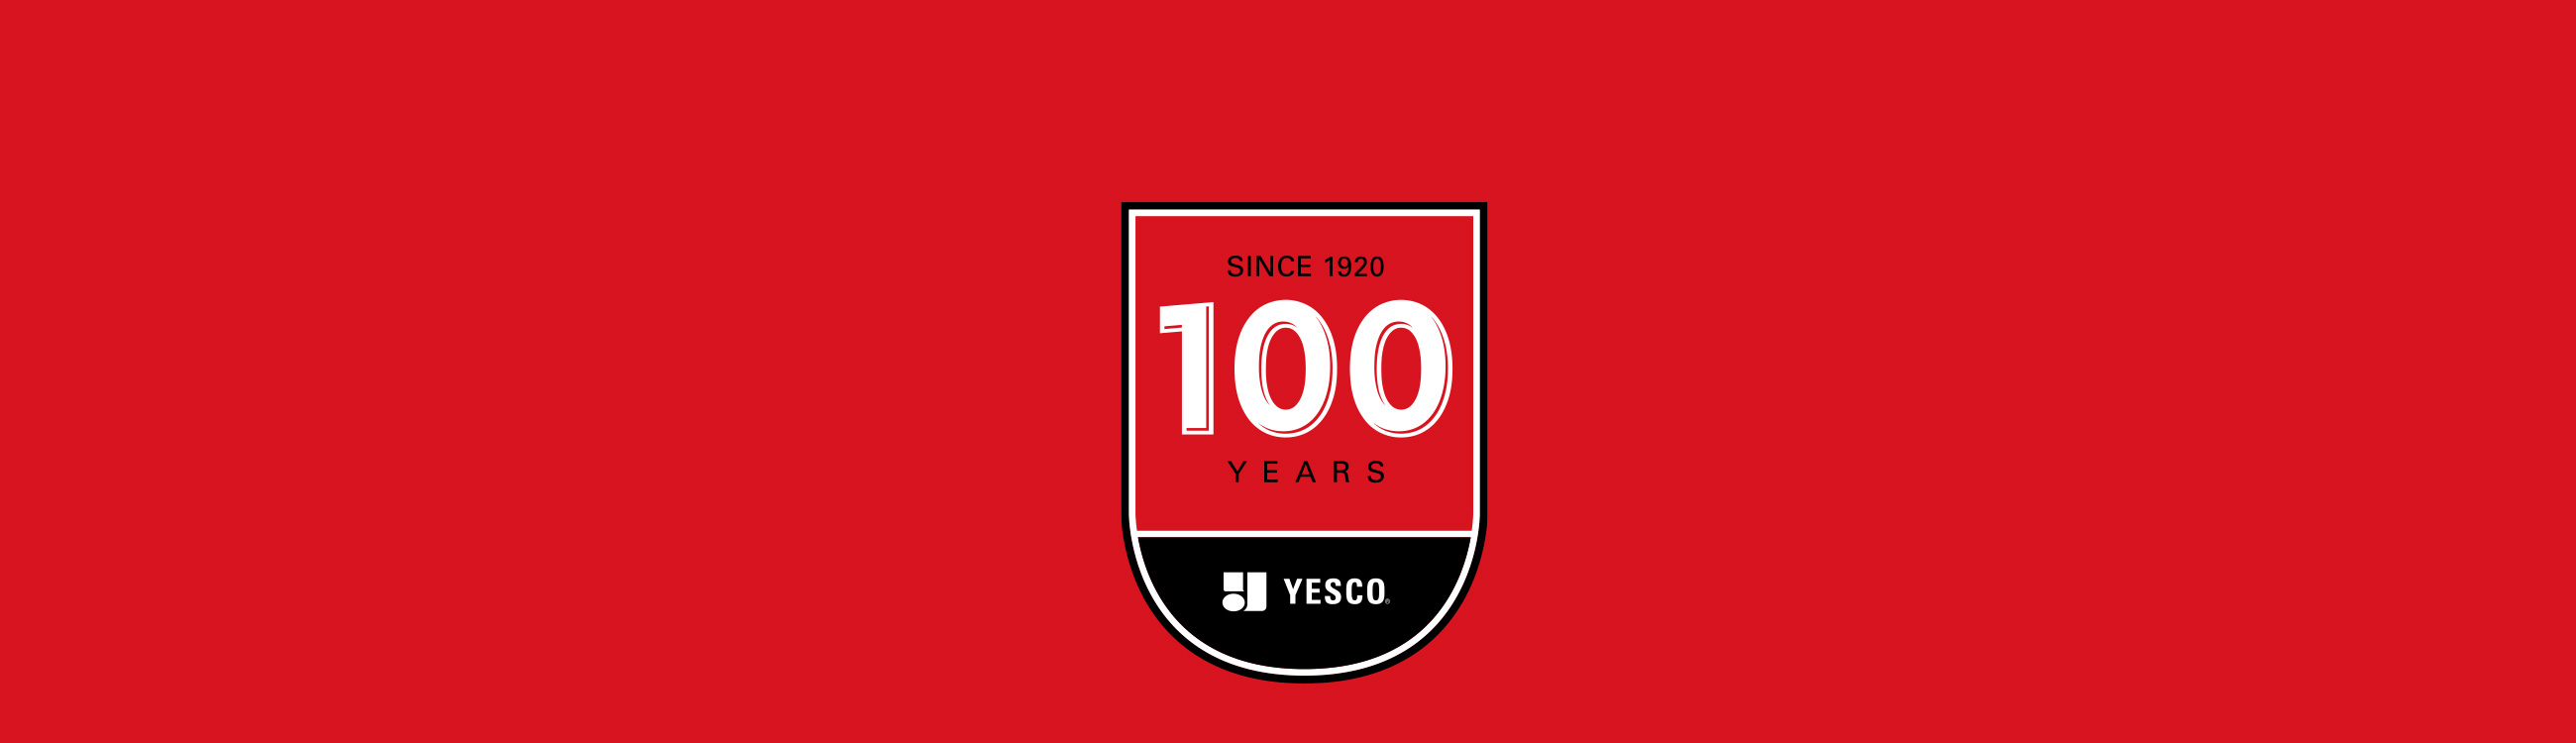 YESCO 100 Years